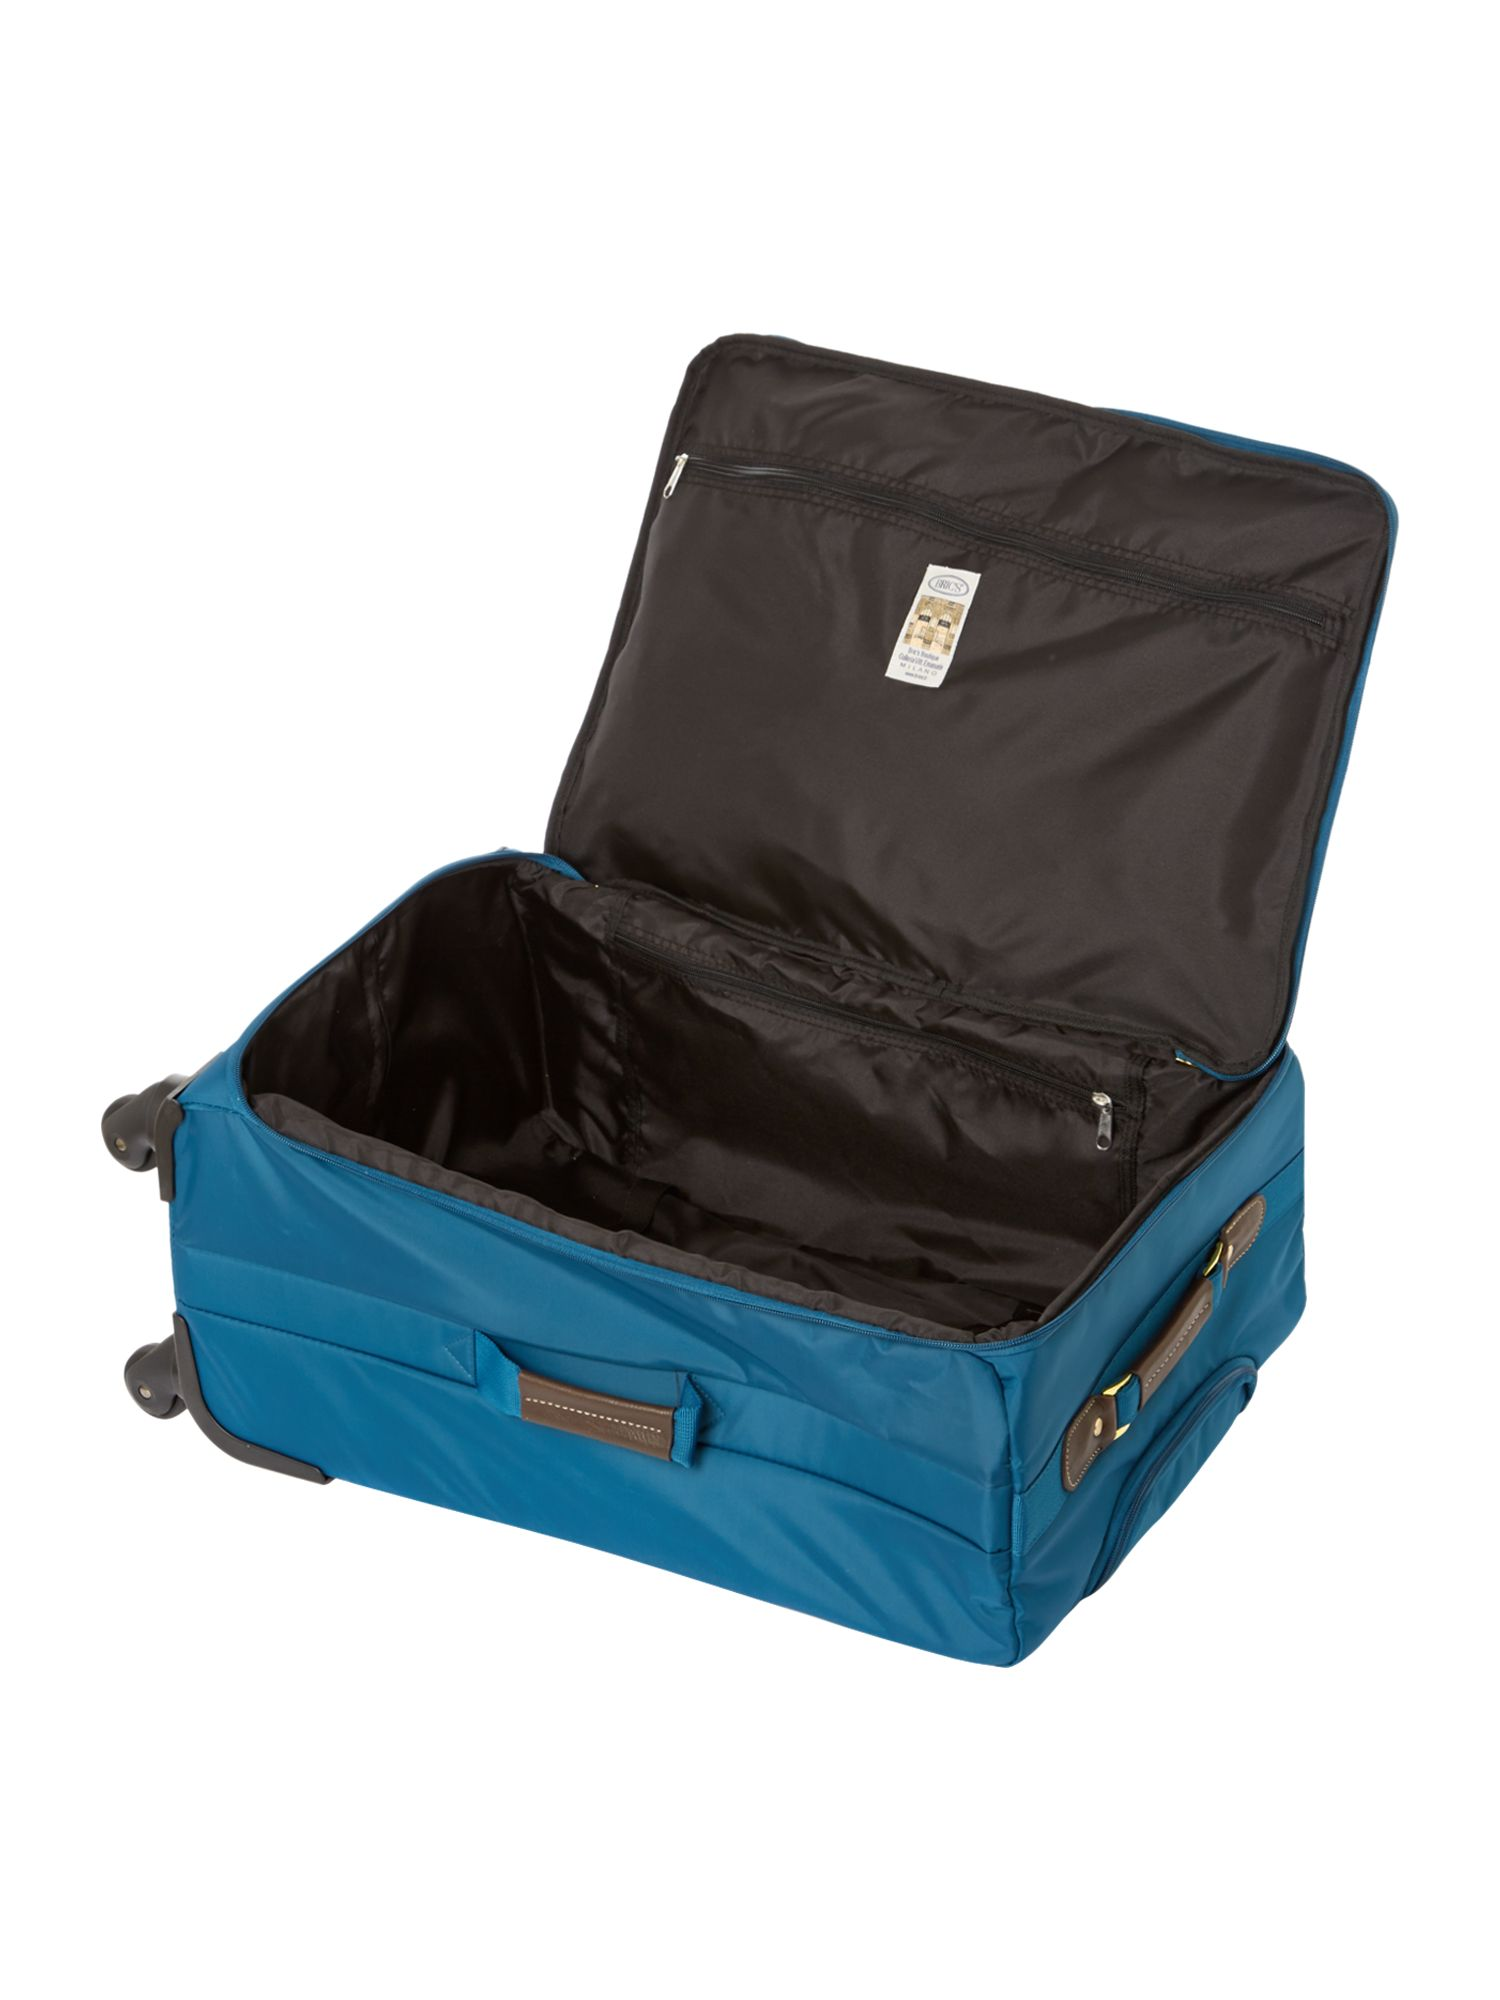 X Travel Bluette lightweight 4 wheel case